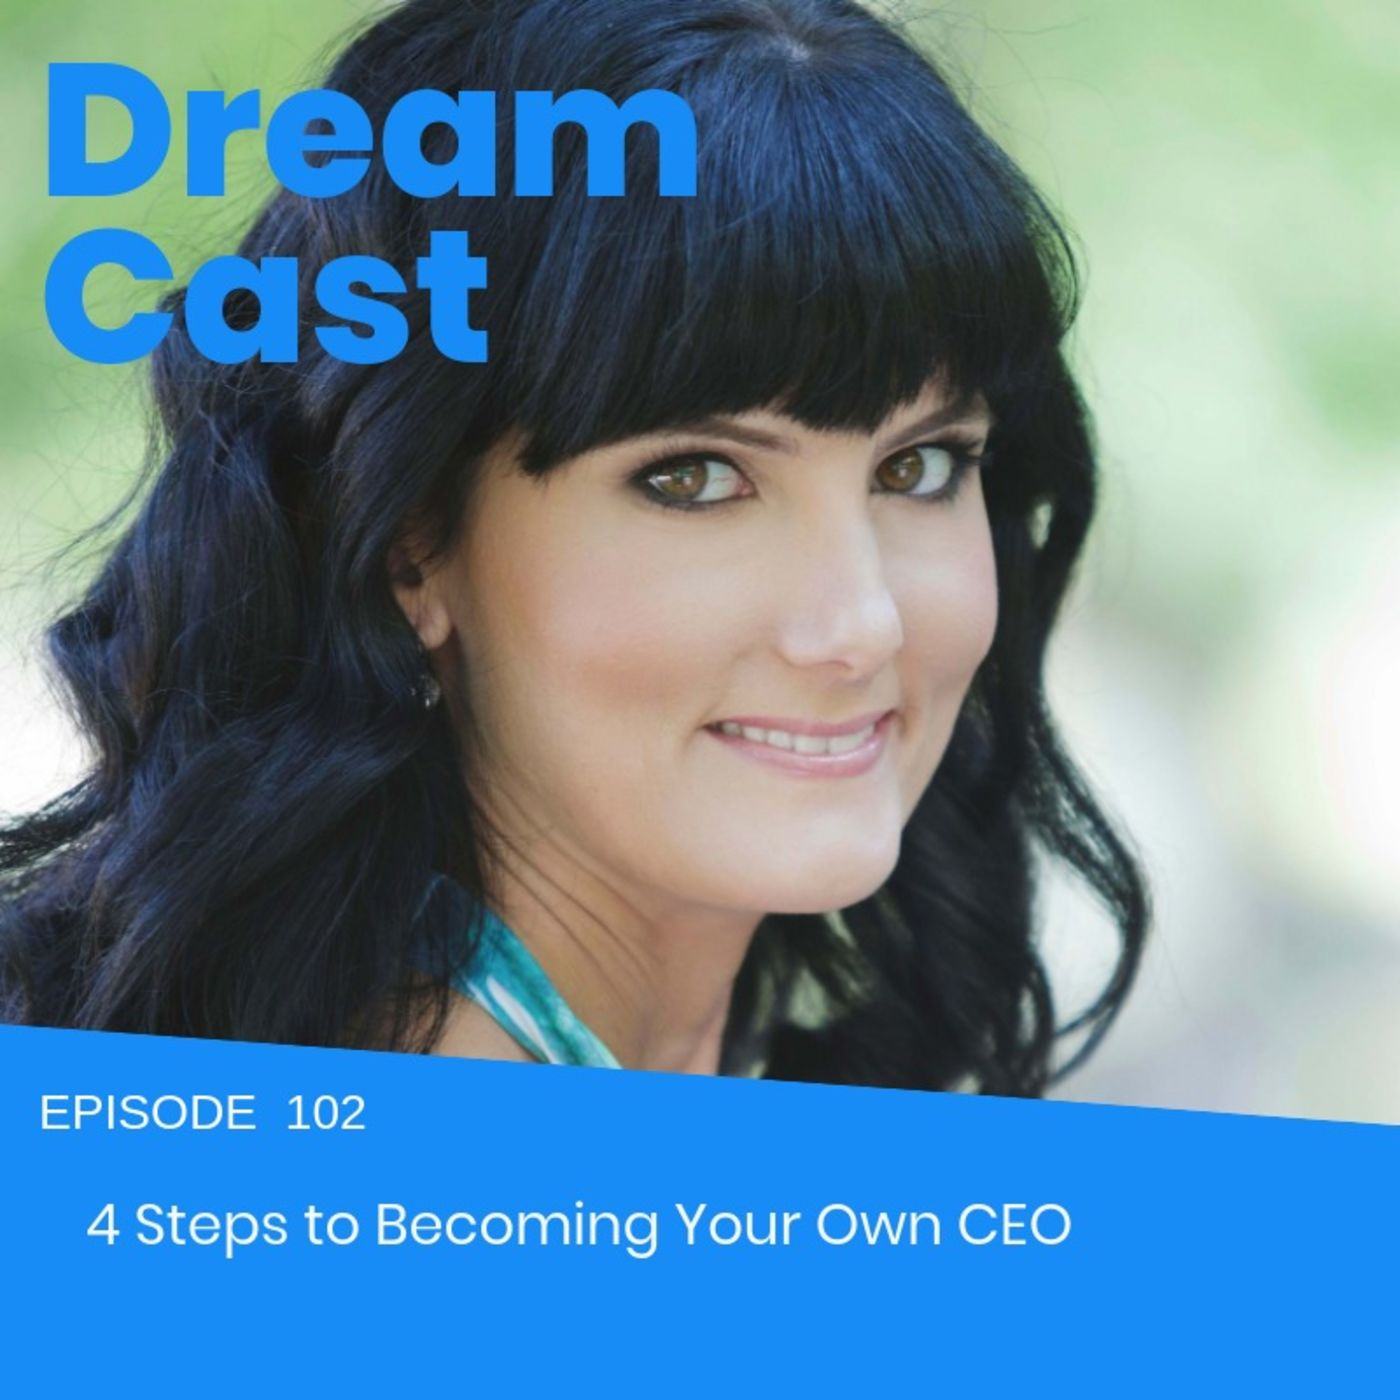 Episode 102 - 4 Steps to Becoming Your Own CEO